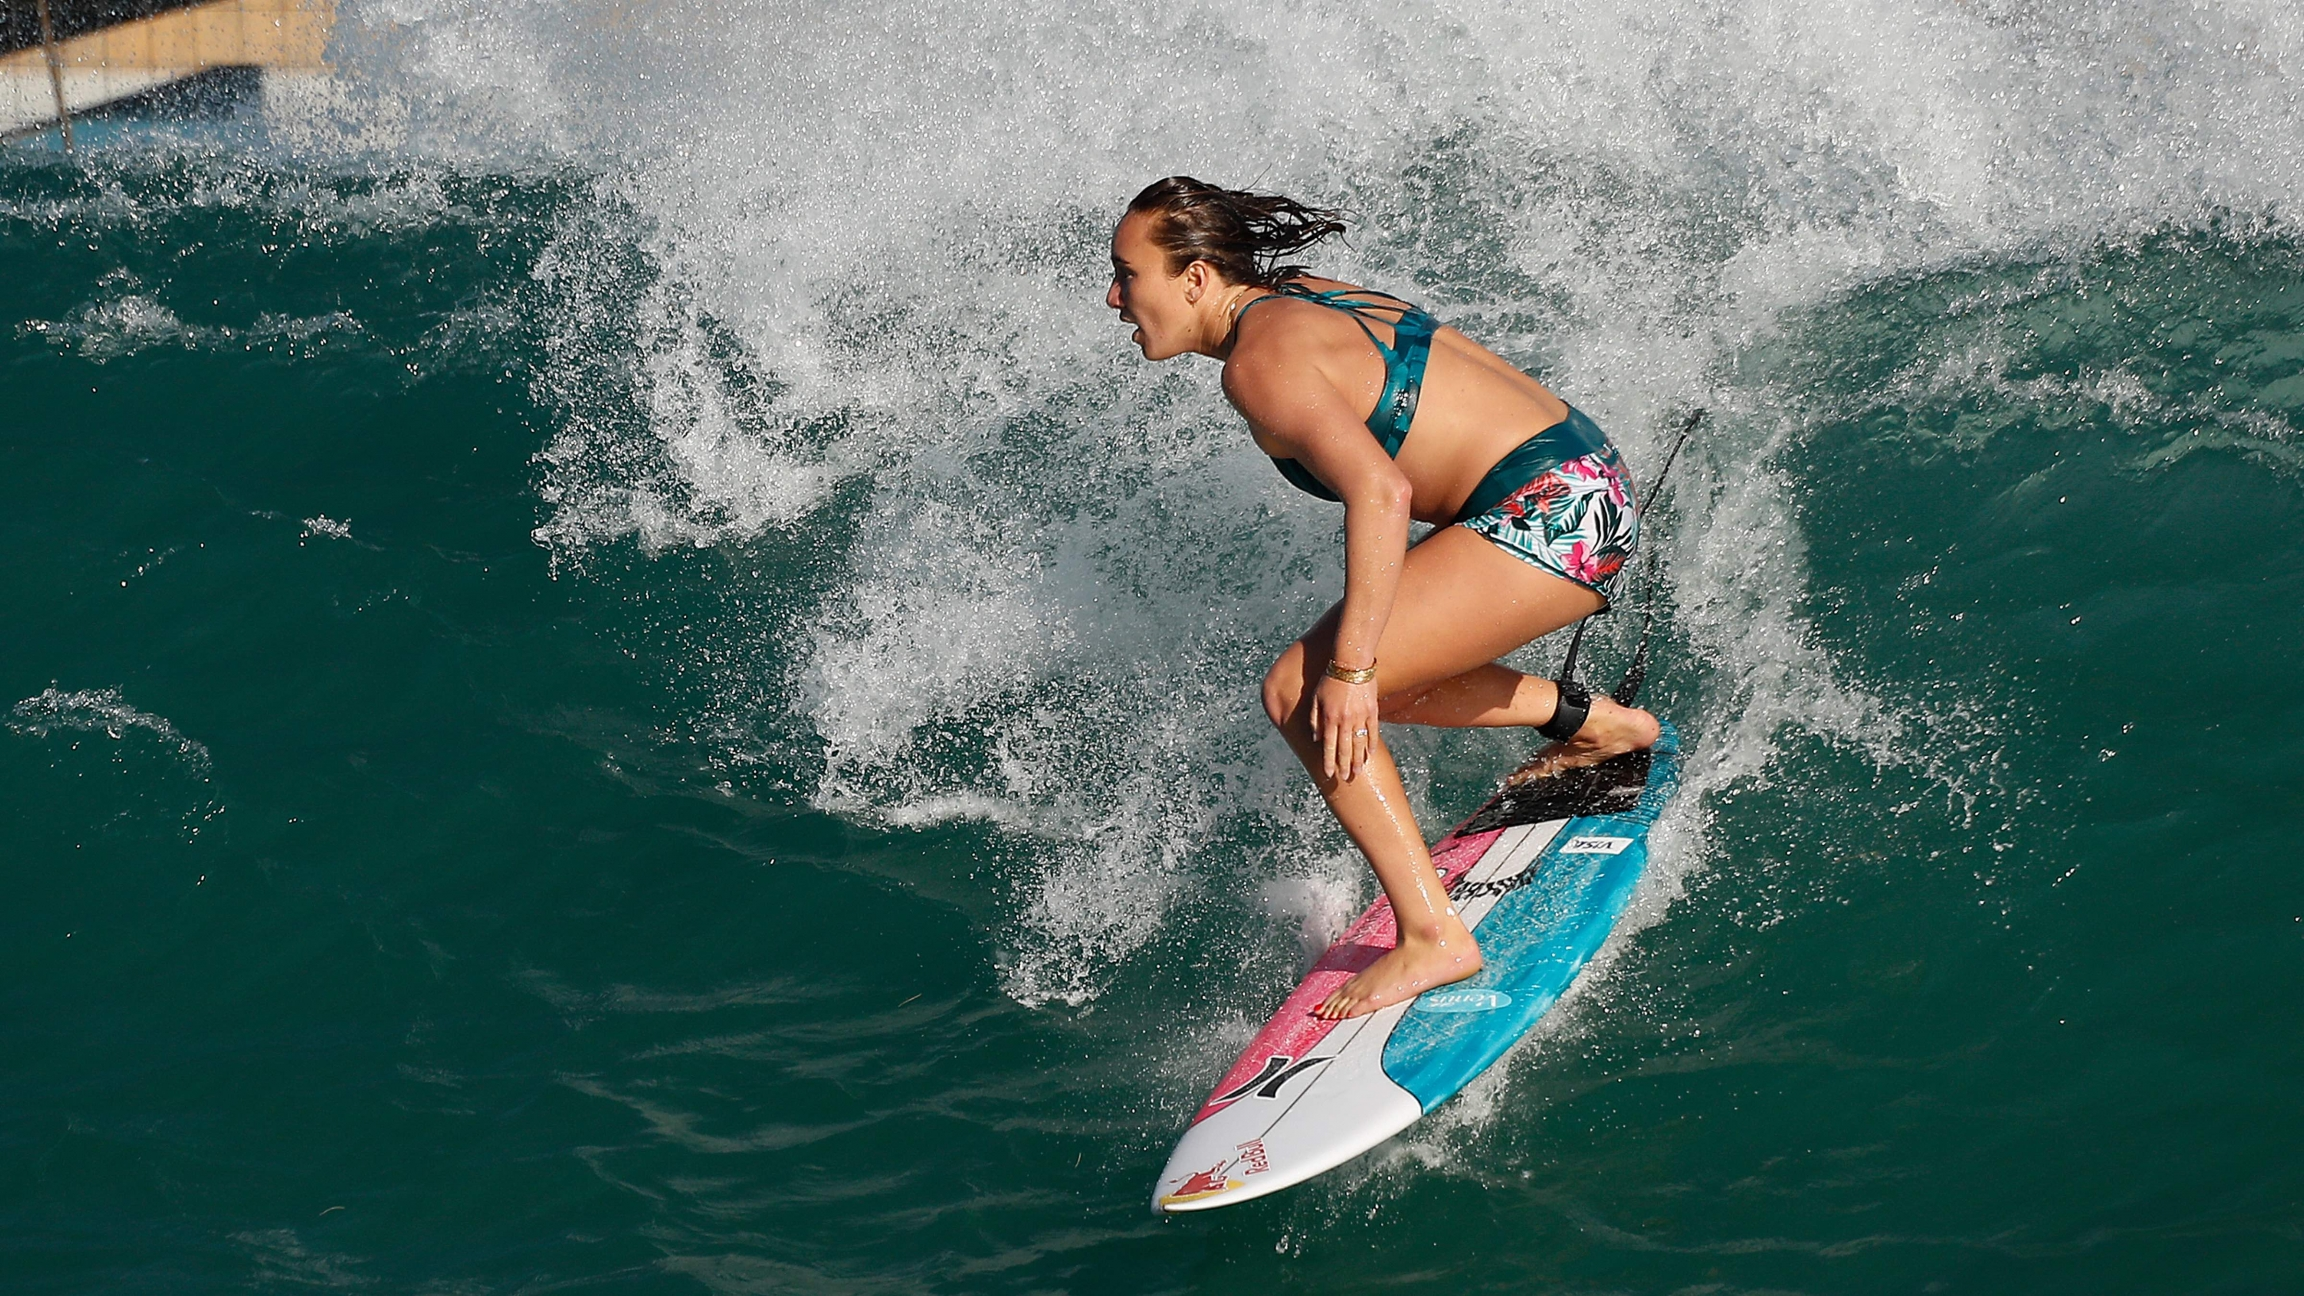 Team USA Hawaiian surfer Carissa Moore practices for a World Surf League competition at Surf Ranch on Tuesdayin Lemoore, California, on June 15, 2021.